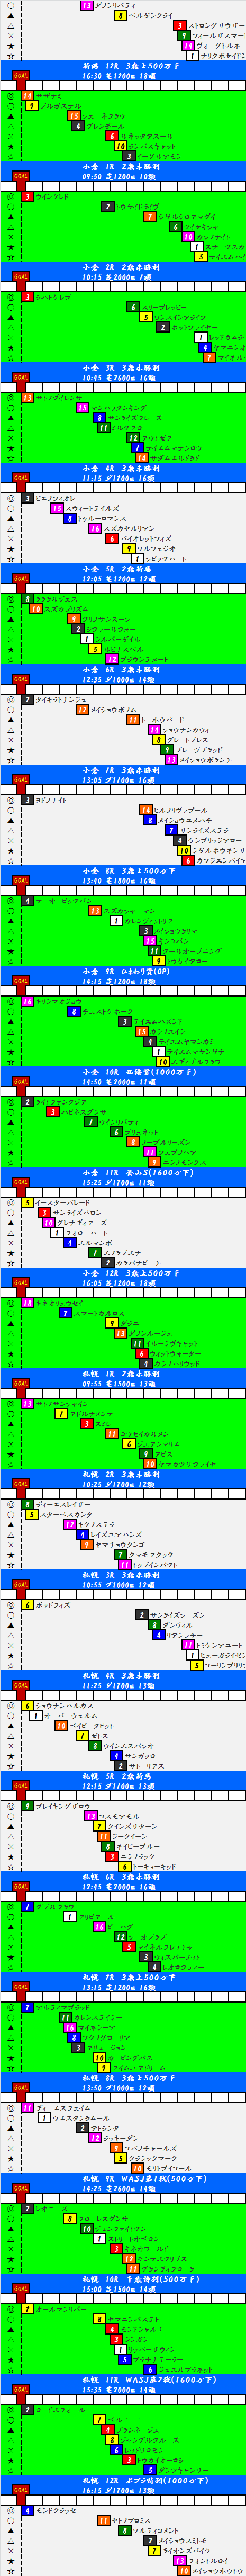 2015082902.png